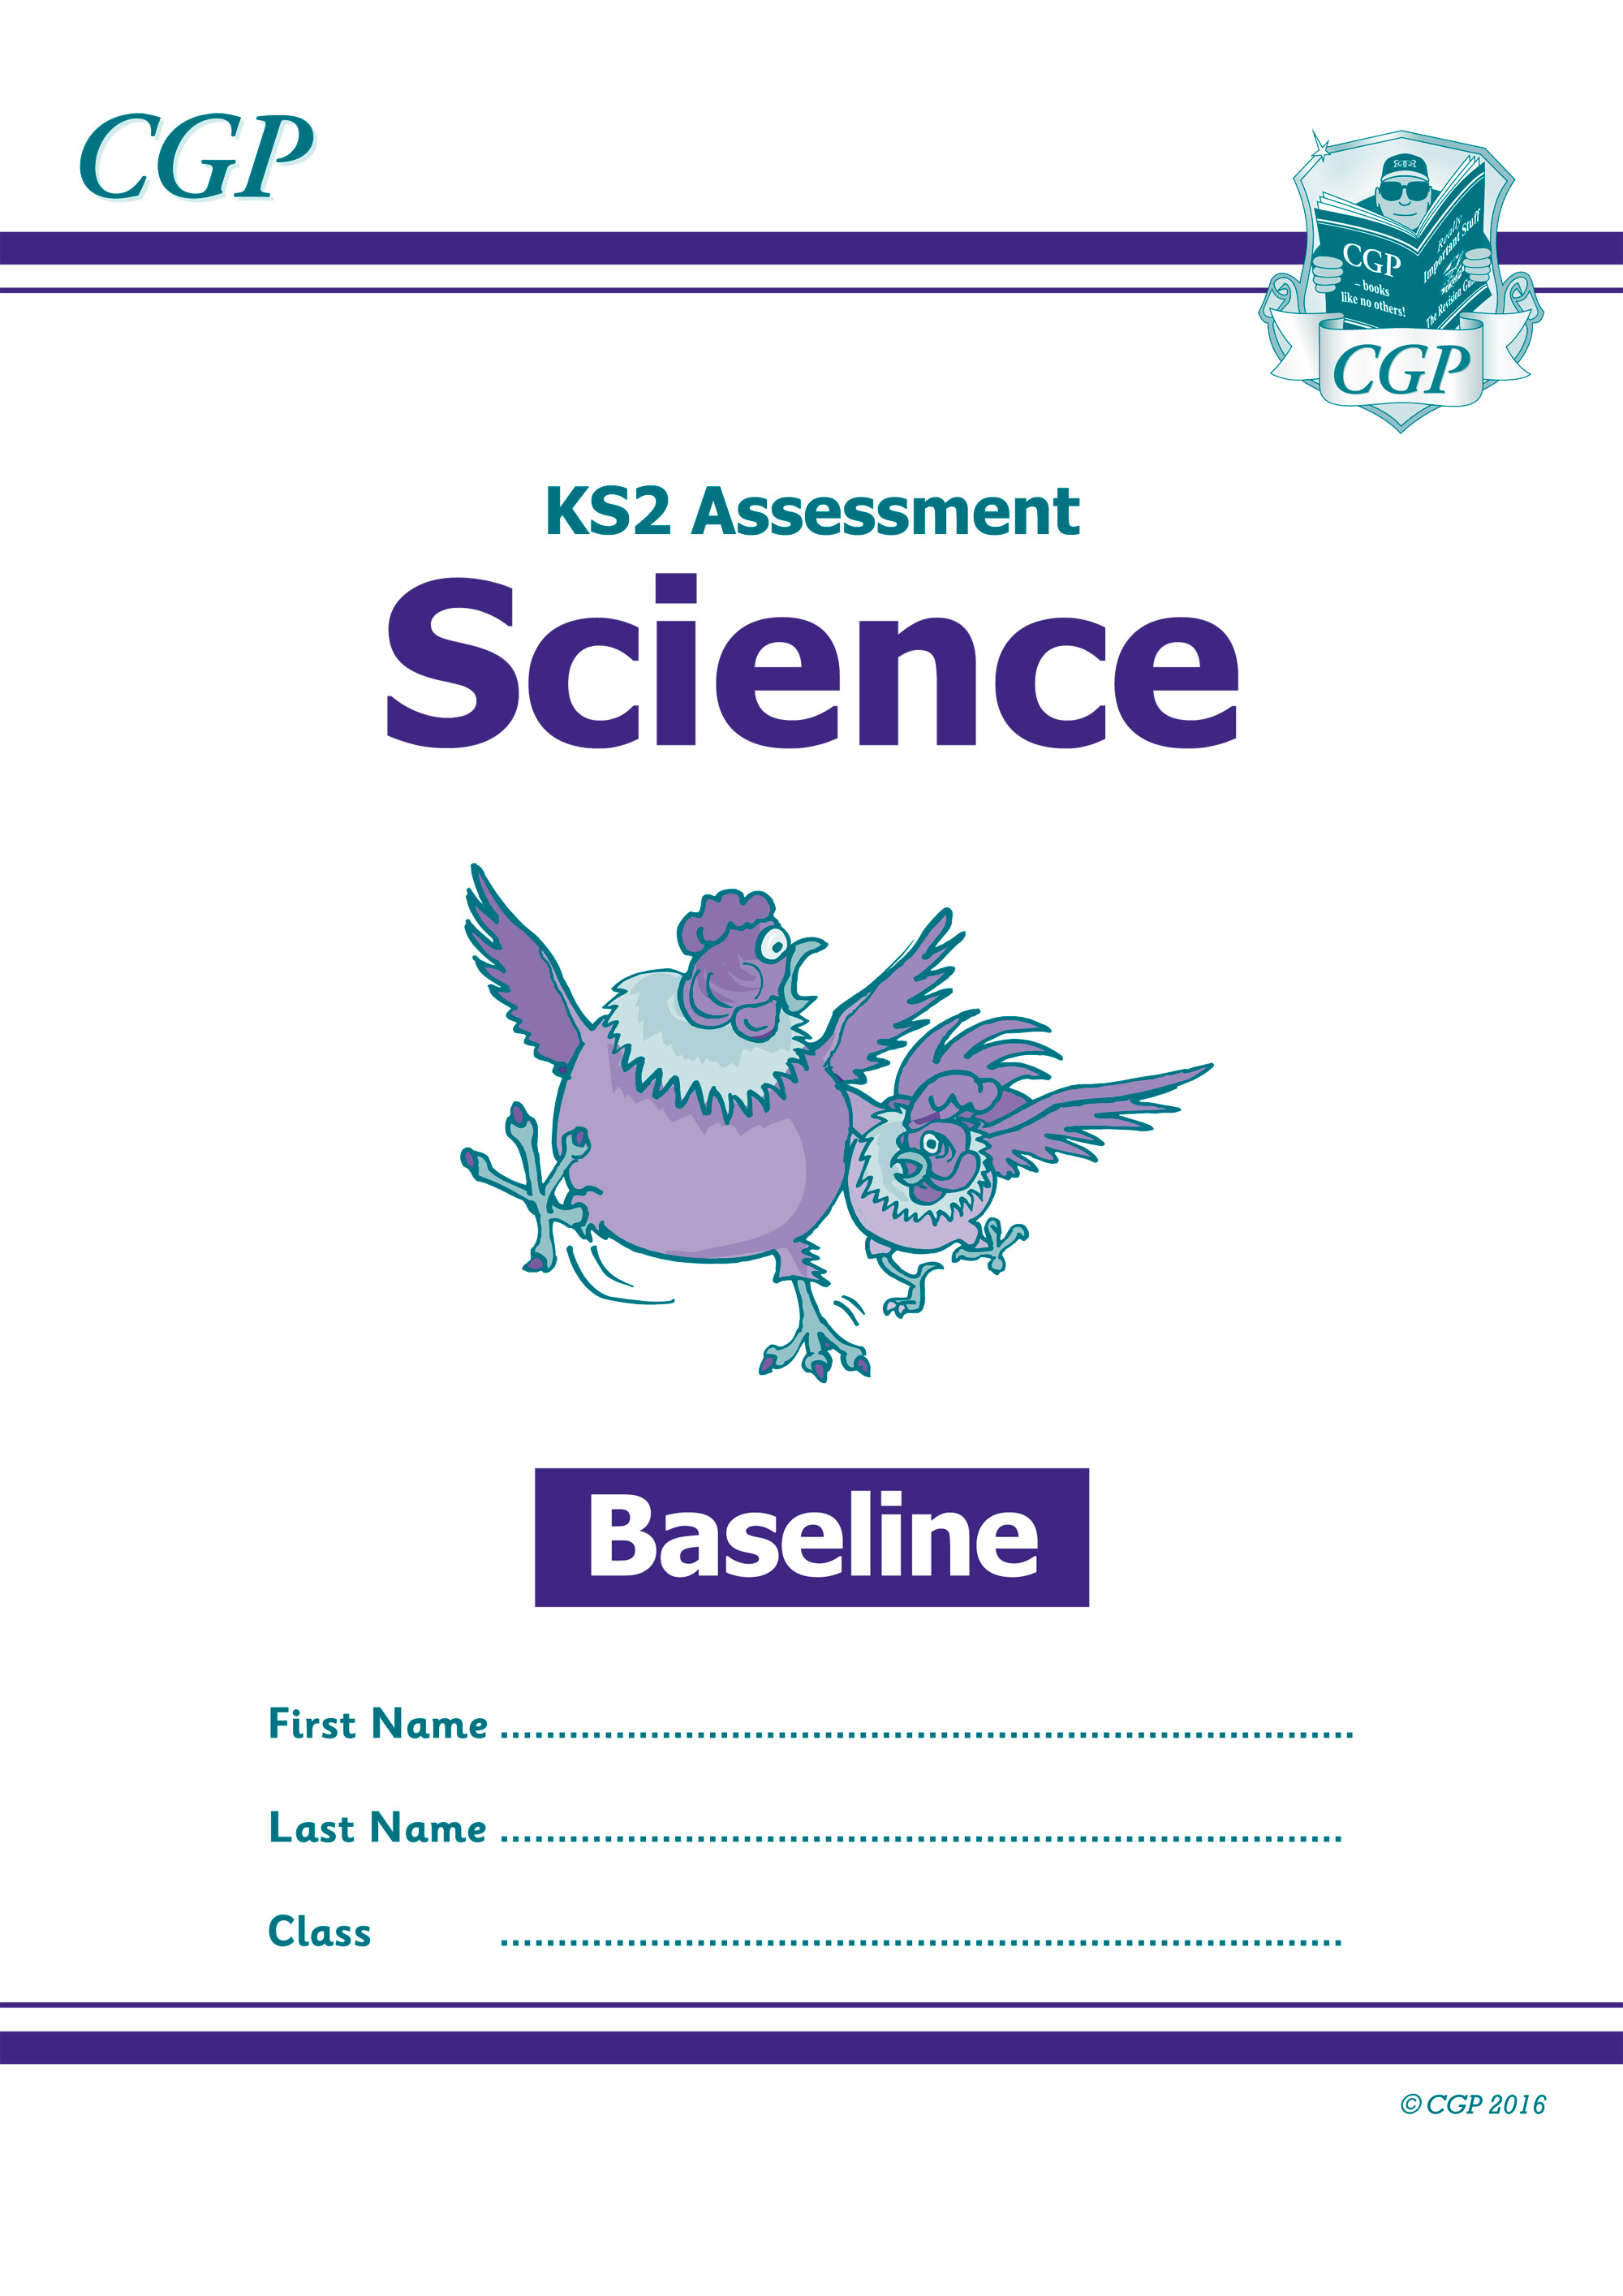 SBP21 - KS2 Assessment: Science - Baseline Test